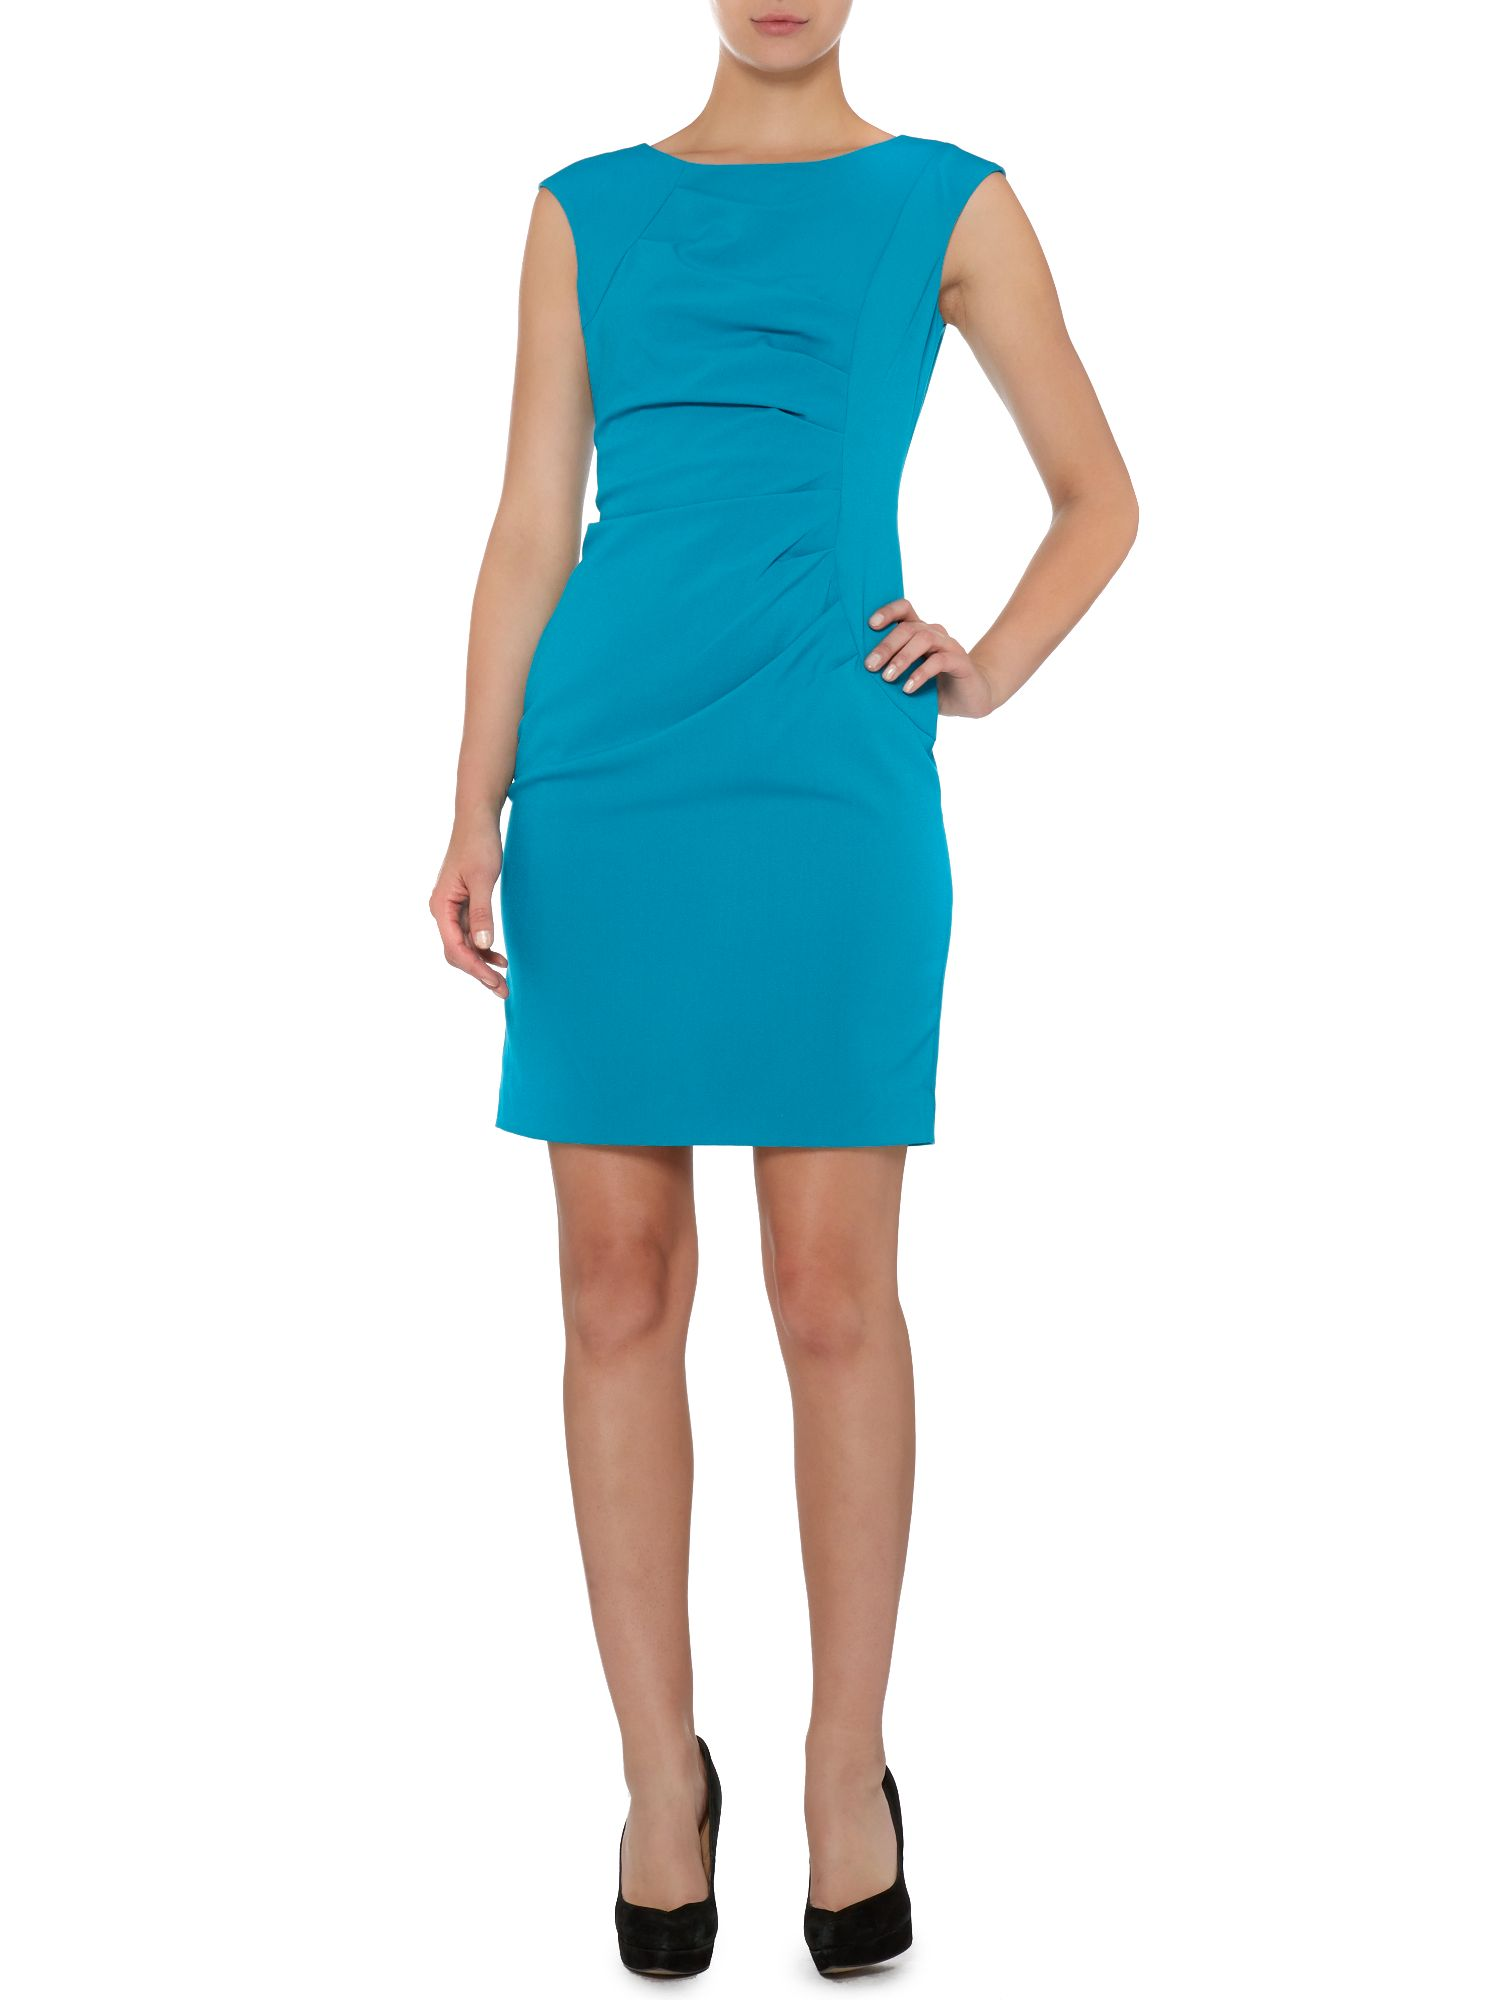 Shift dress with ruched side